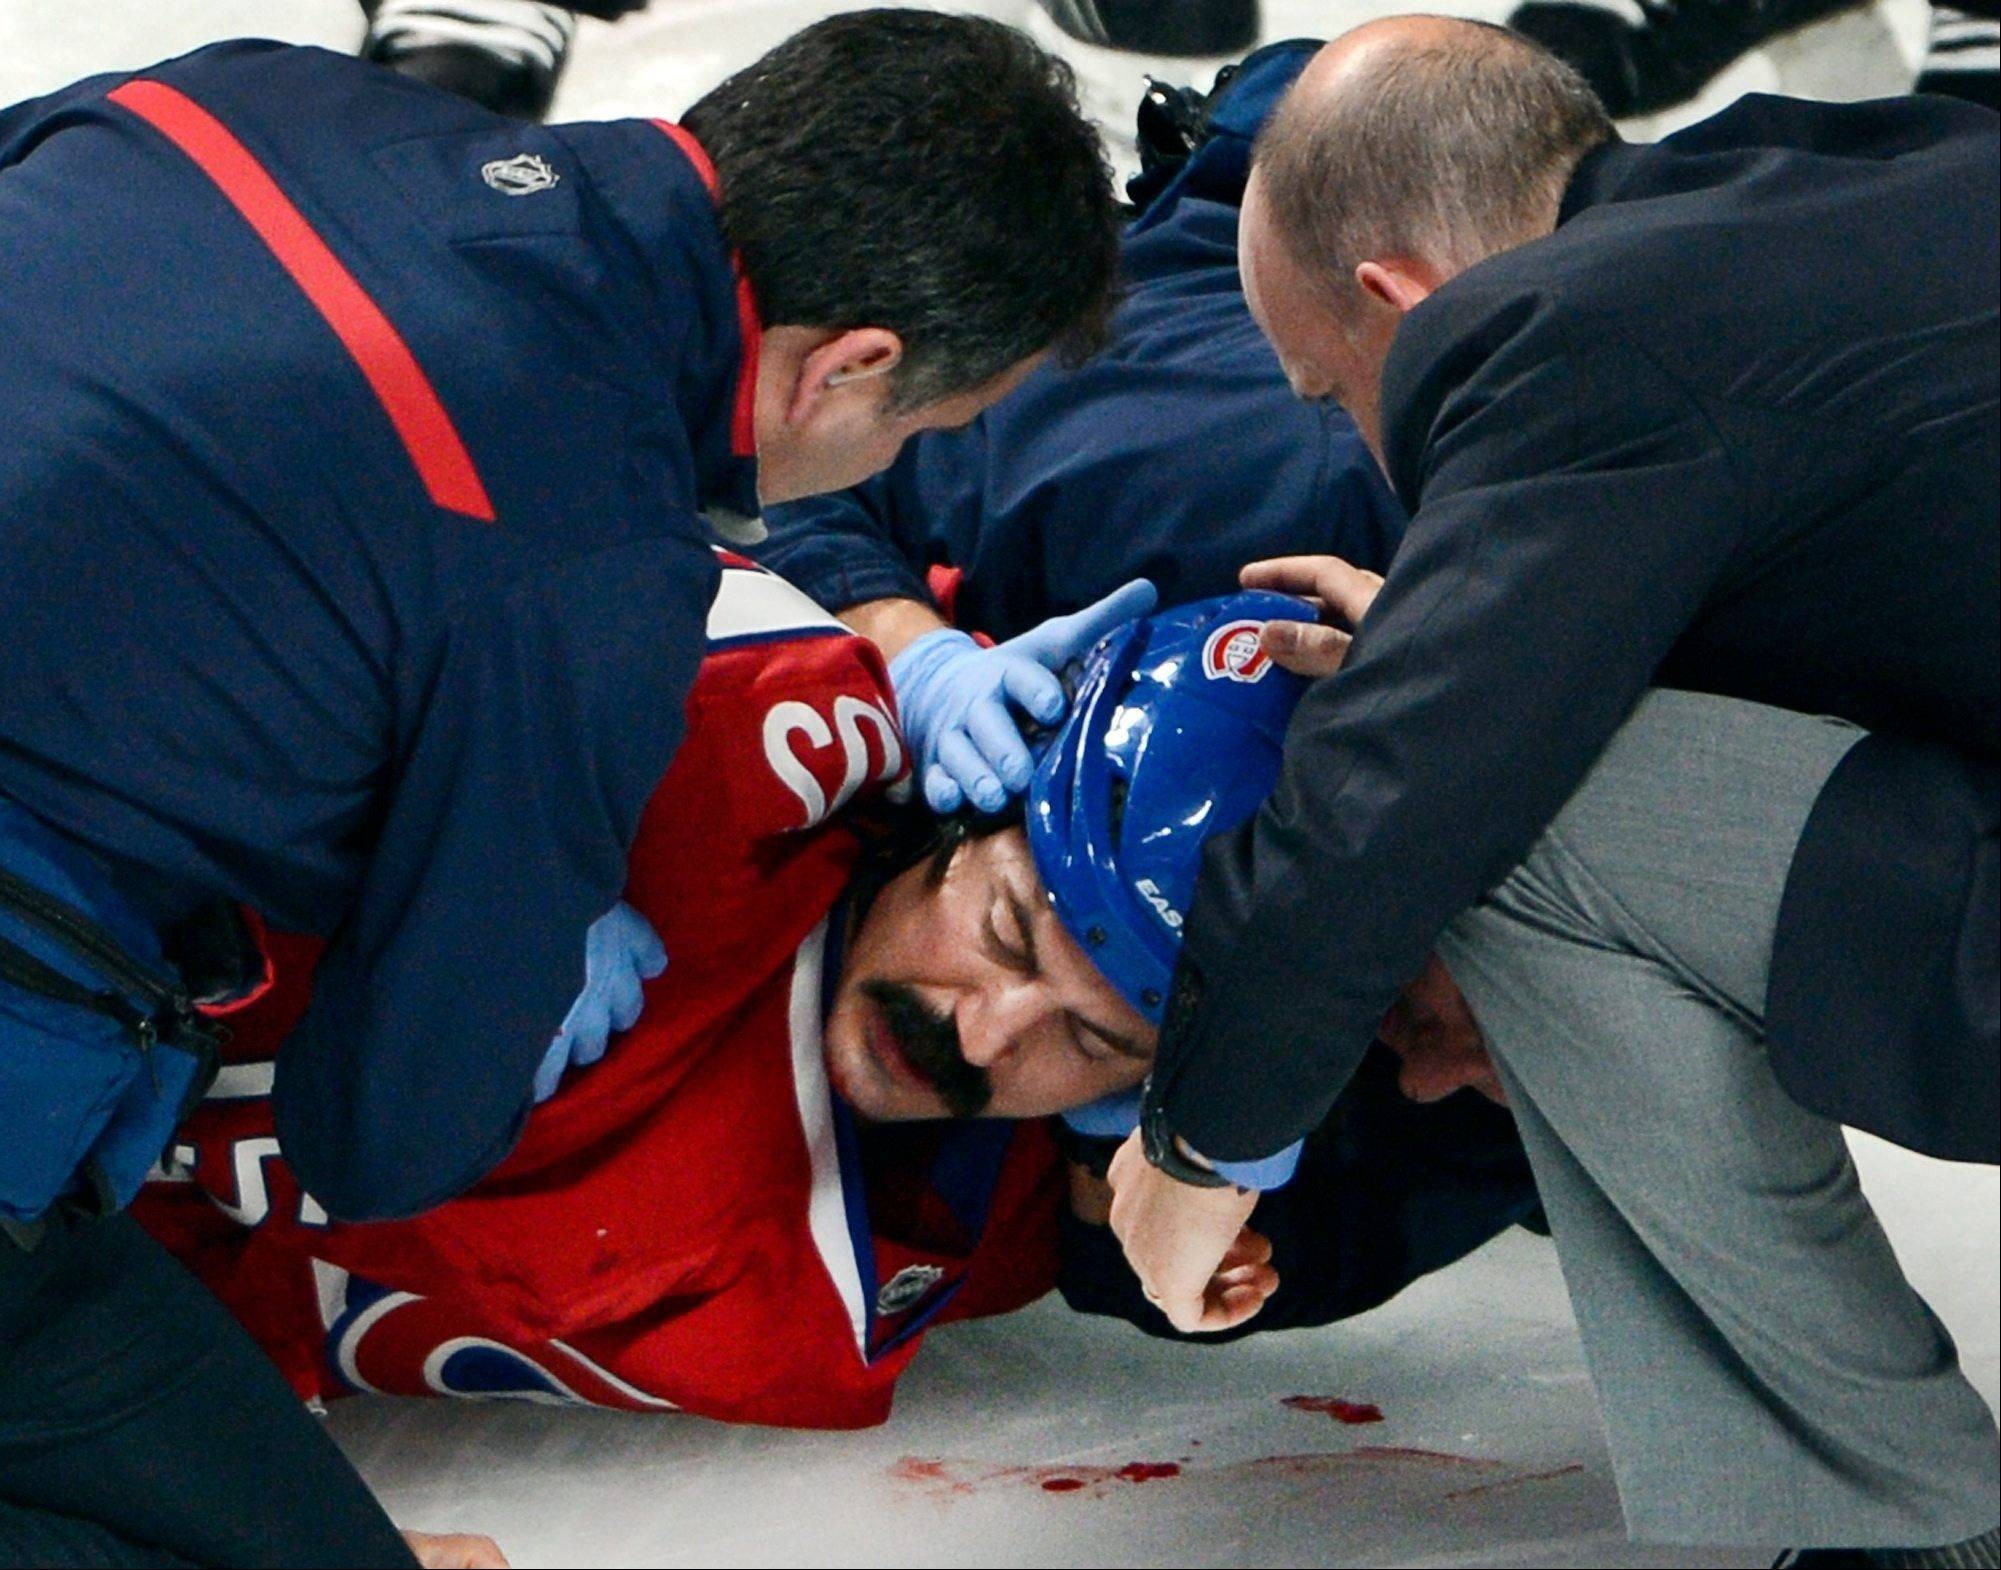 Montreal Canadiens winger George Parros (15) is treated Tuesday by medical staff after he hit his head on the ice during a fight with Toronto Maple Leafs right wing Colton Orr during third period NHL action in Montreal. Parros sustained a concussion.